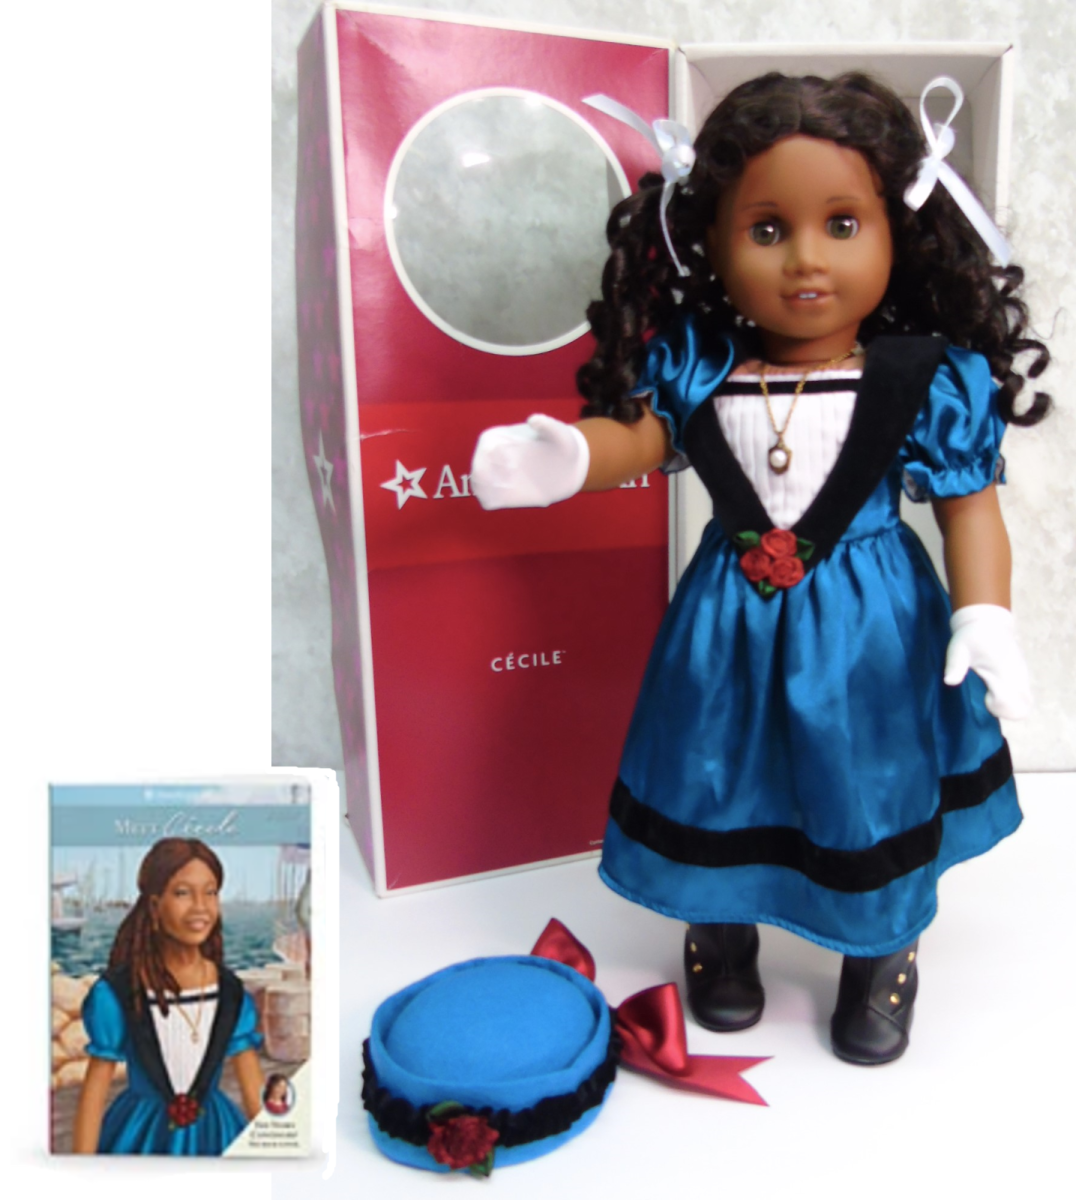 A Cécile Doll, posed with her accessories, packaging, and Meet Cécile book